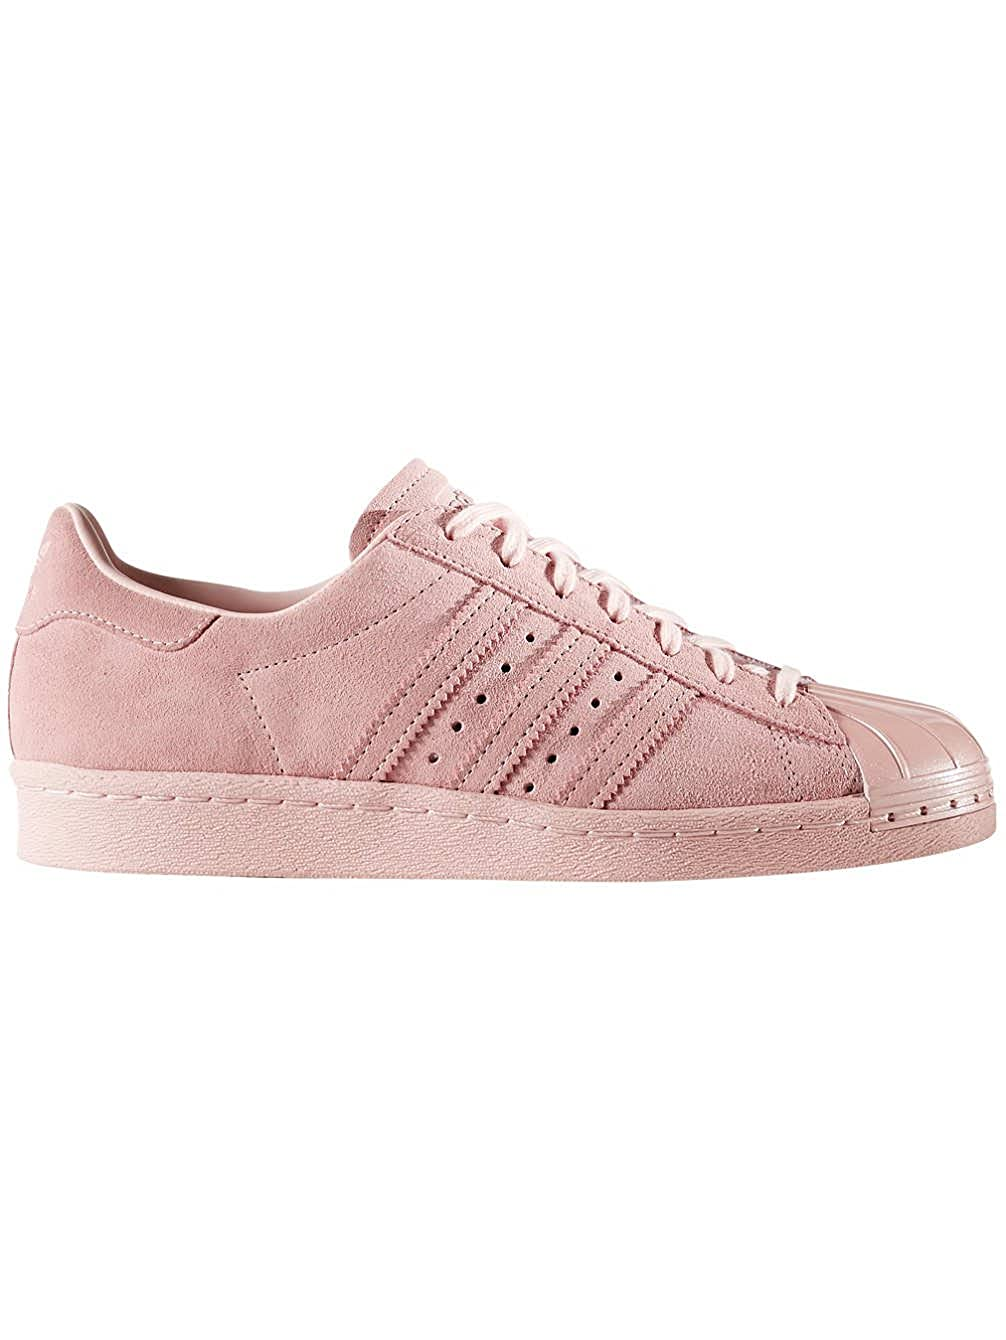 Rose (Roshel   Roshel   Roshel 000) adidas Superstar 80s Metal Toe W Basket Mode Femme 38 EU